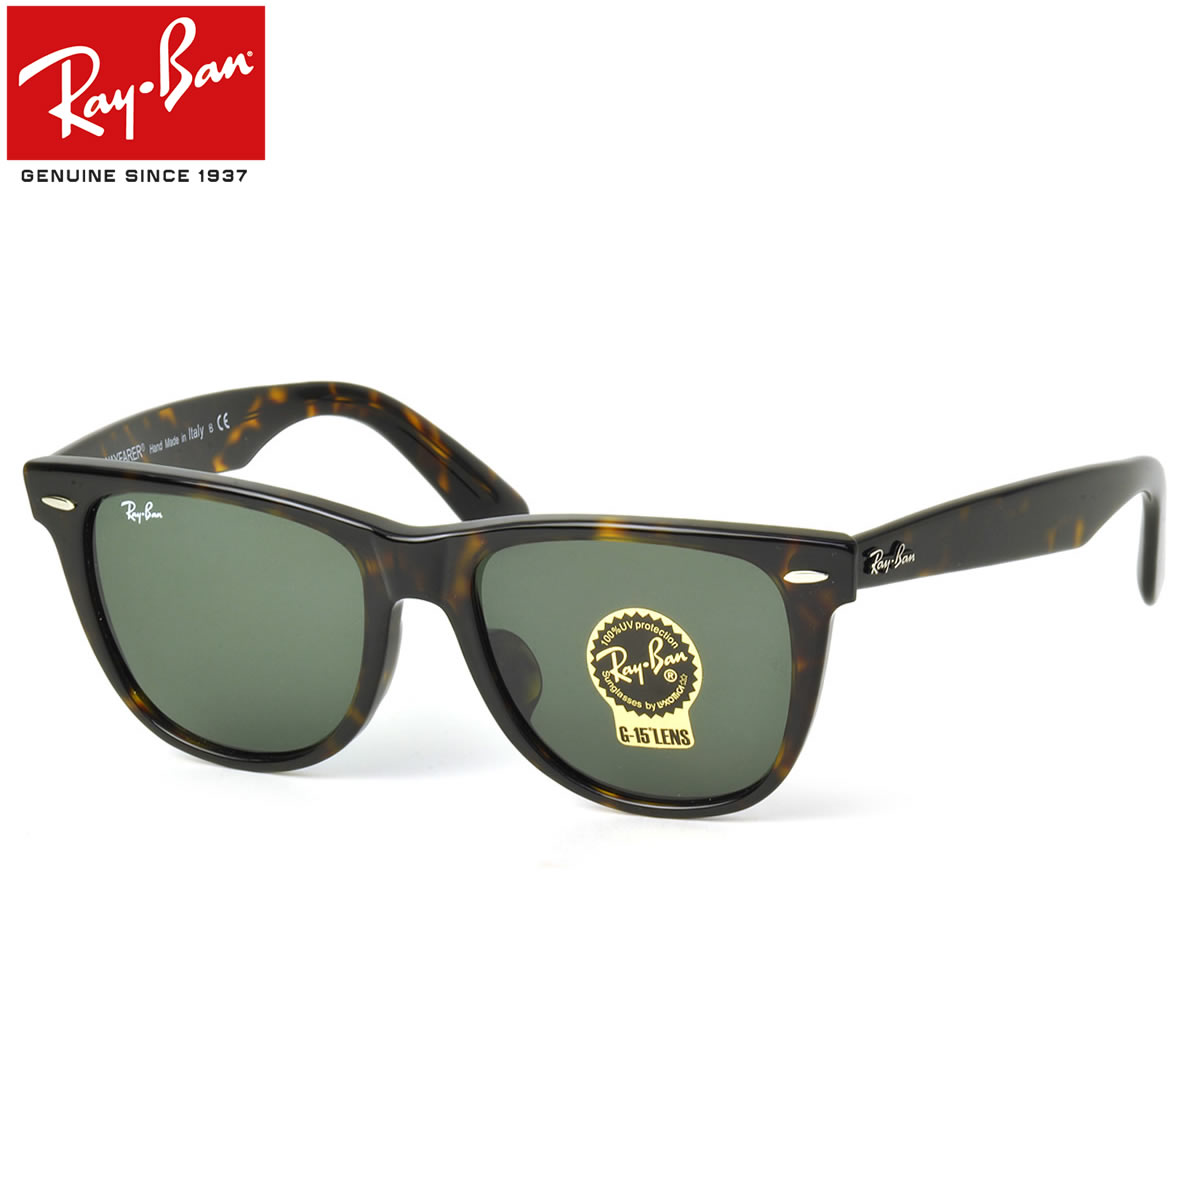 3de284e7a6 Ray-Ban Sunglasses RB2140F 902 54size WAYFARER FULL FIT (for Asian) GENUINE  NEW rayban ray ban